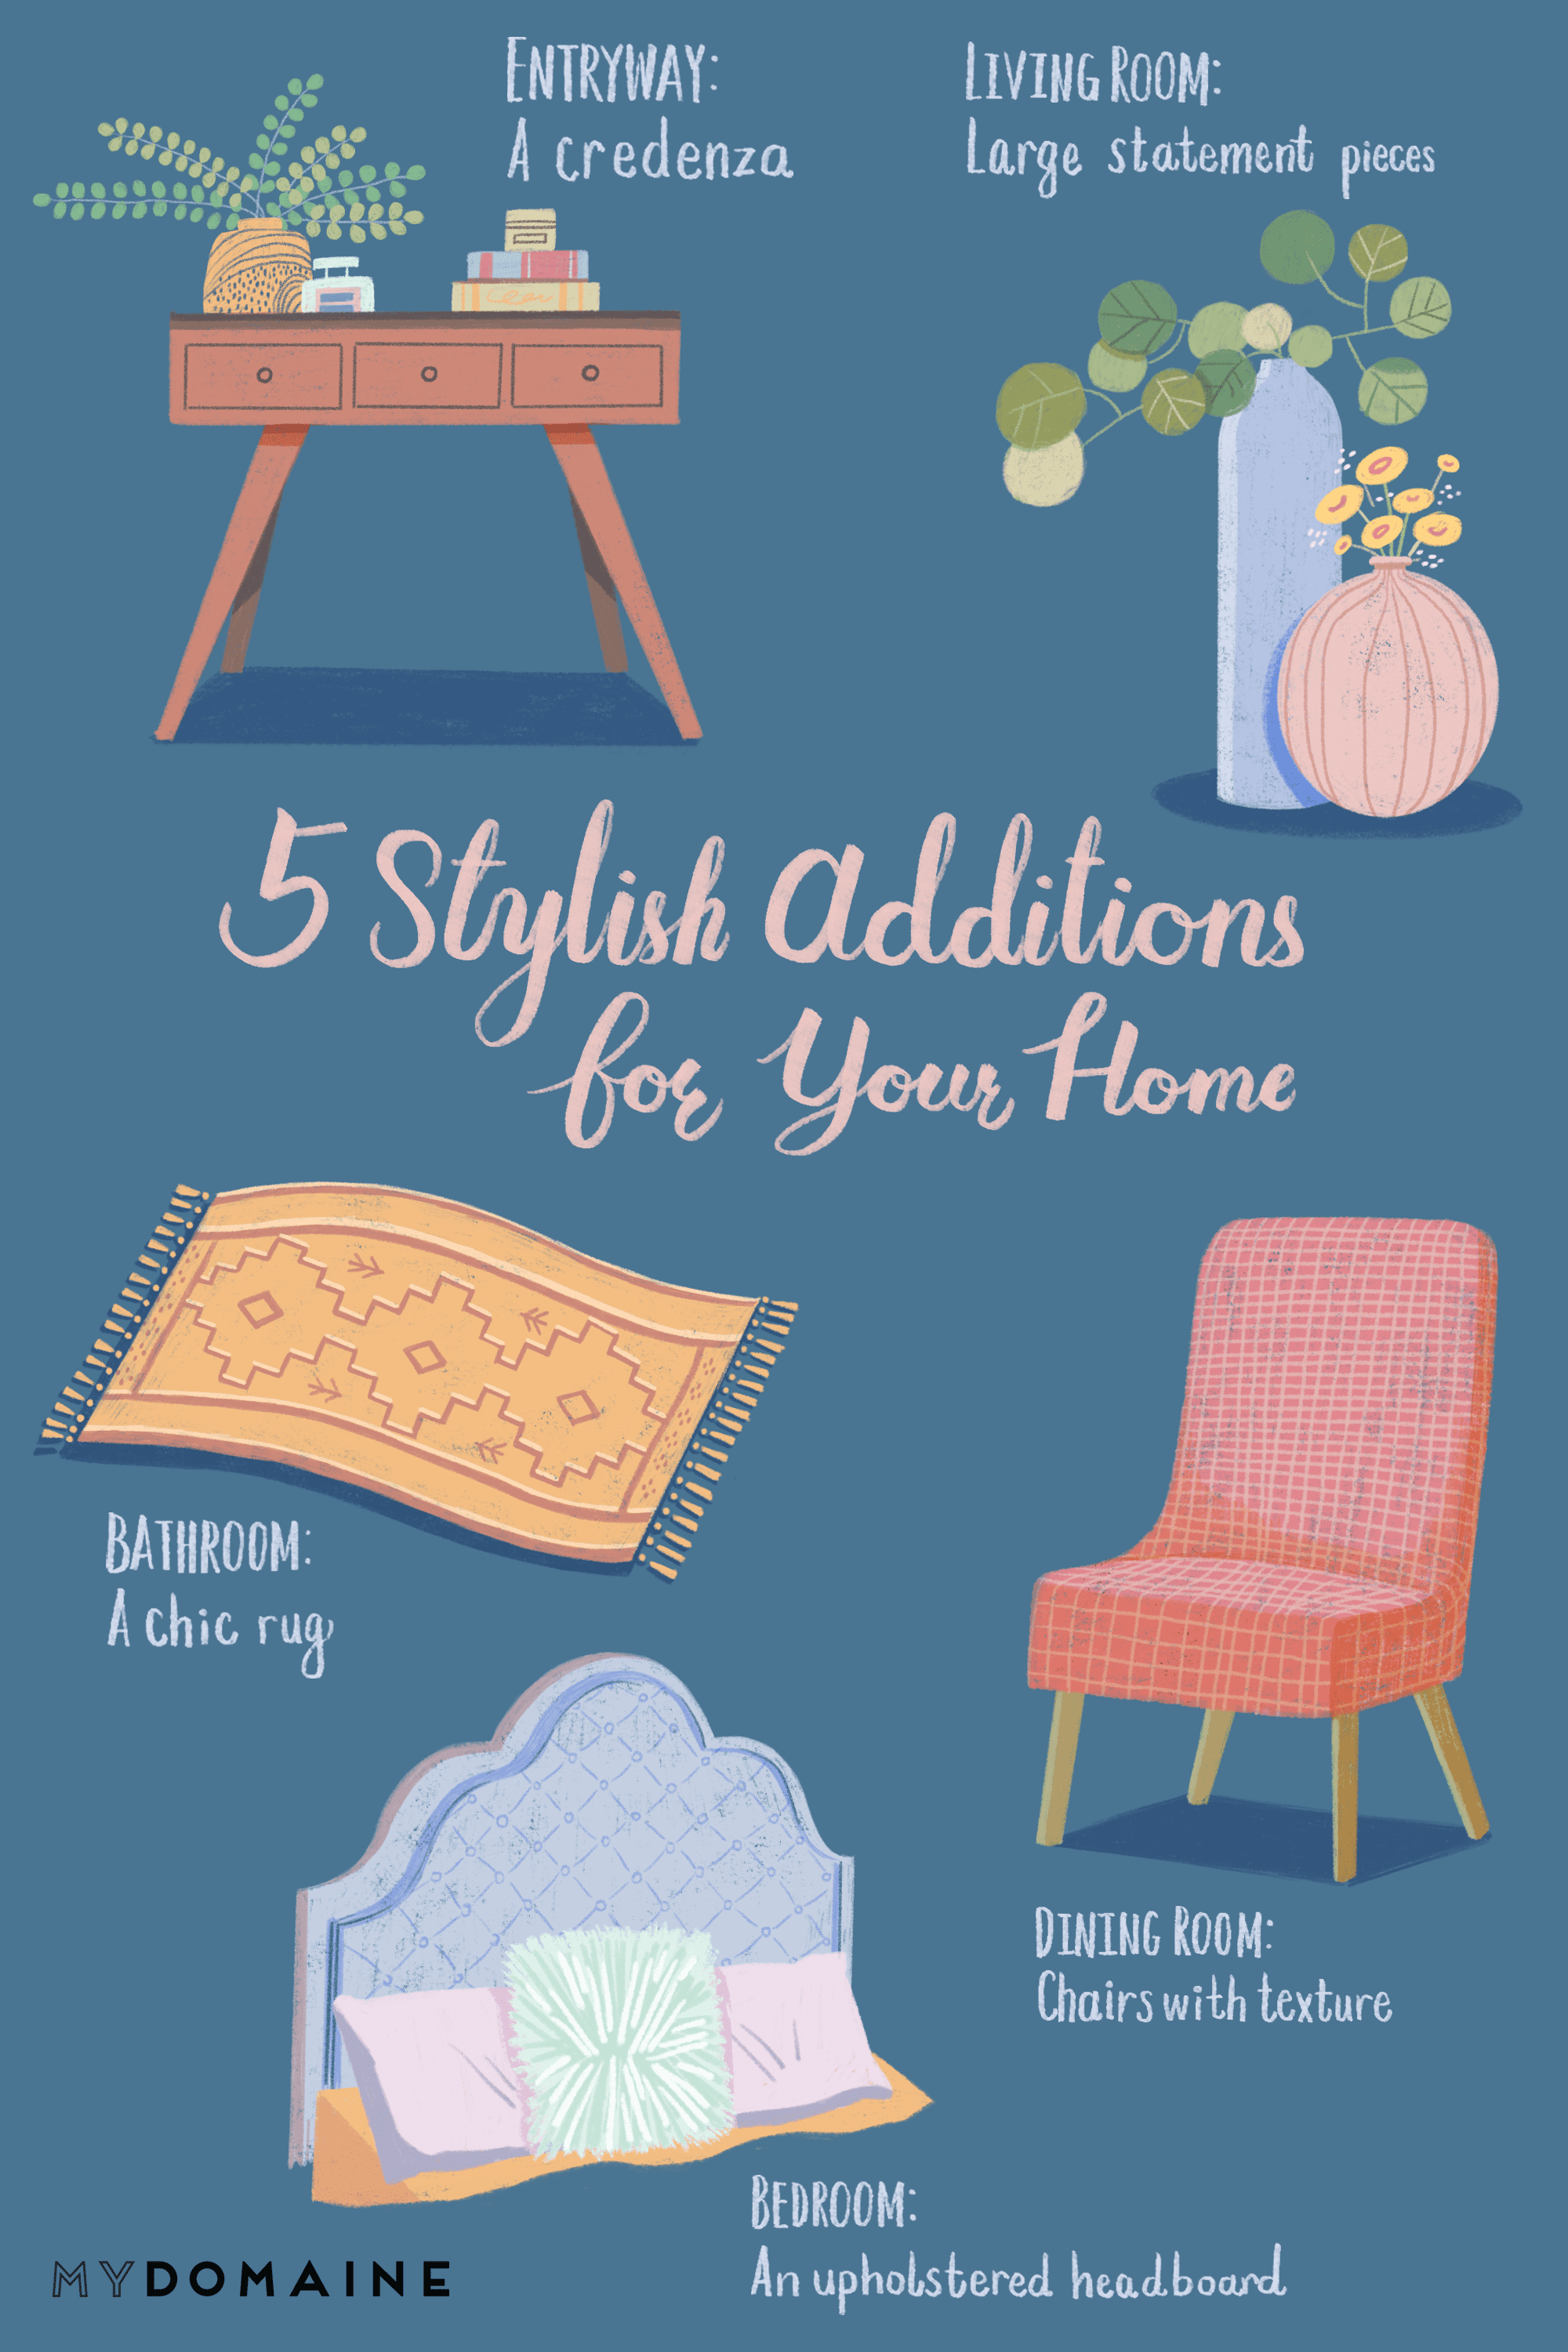 5 Stylish Additions for Your Home